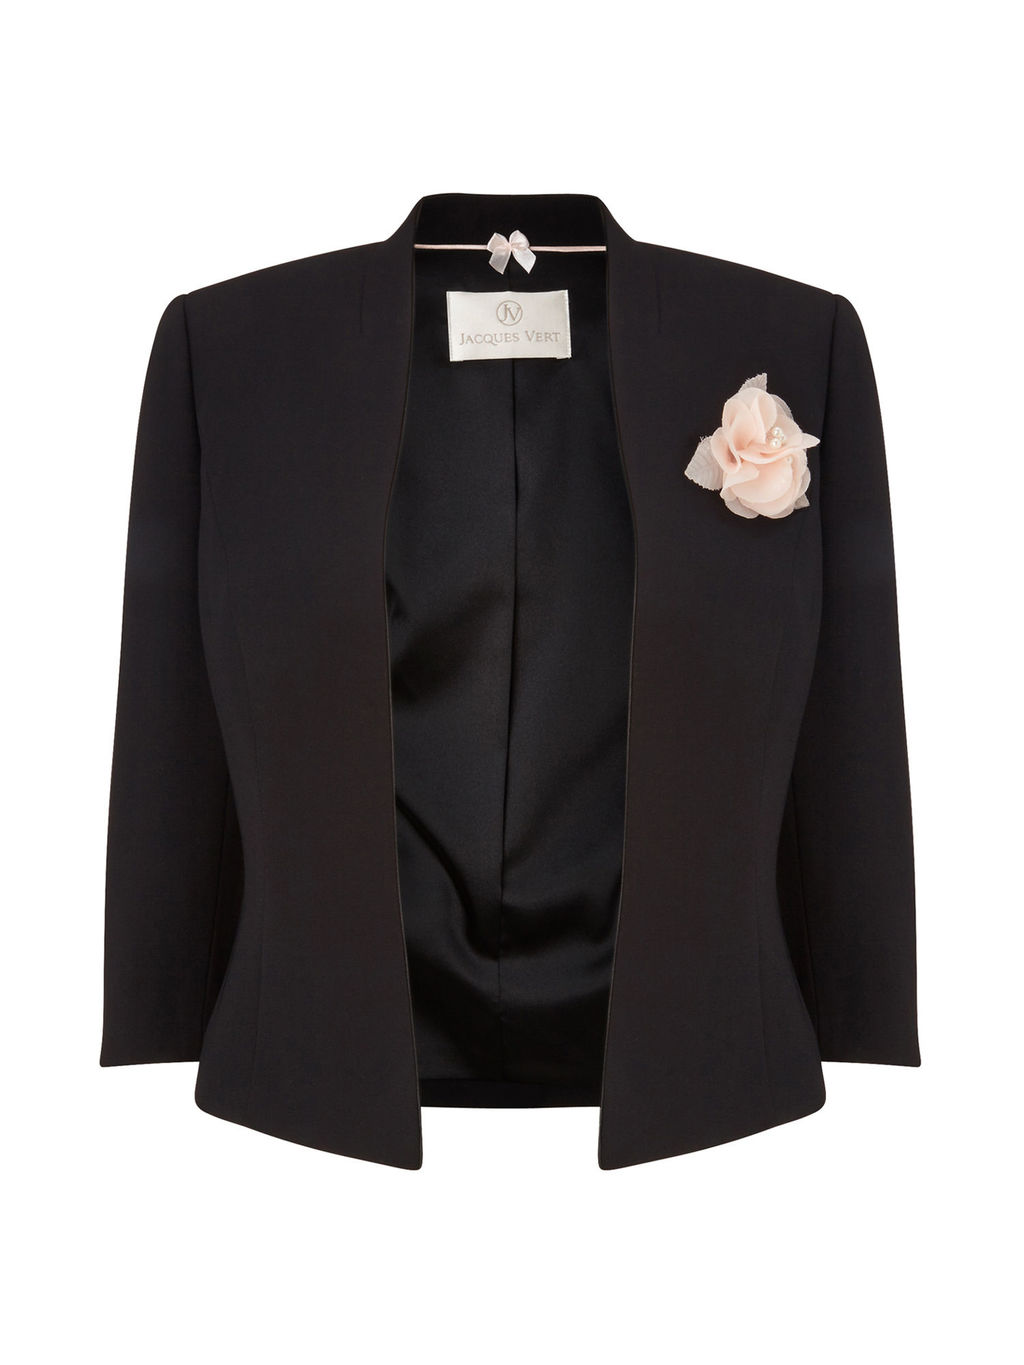 Crepe Corsage Jacket, Black - pattern: plain; style: cropped; collar: round collar/collarless; secondary colour: blush; predominant colour: black; fit: tailored/fitted; fibres: polyester/polyamide - 100%; occasions: occasion; sleeve length: half sleeve; sleeve style: standard; collar break: low/open; pattern type: fabric; texture group: woven light midweight; embellishment: corsage; length: cropped; season: s/s 2016; wardrobe: event